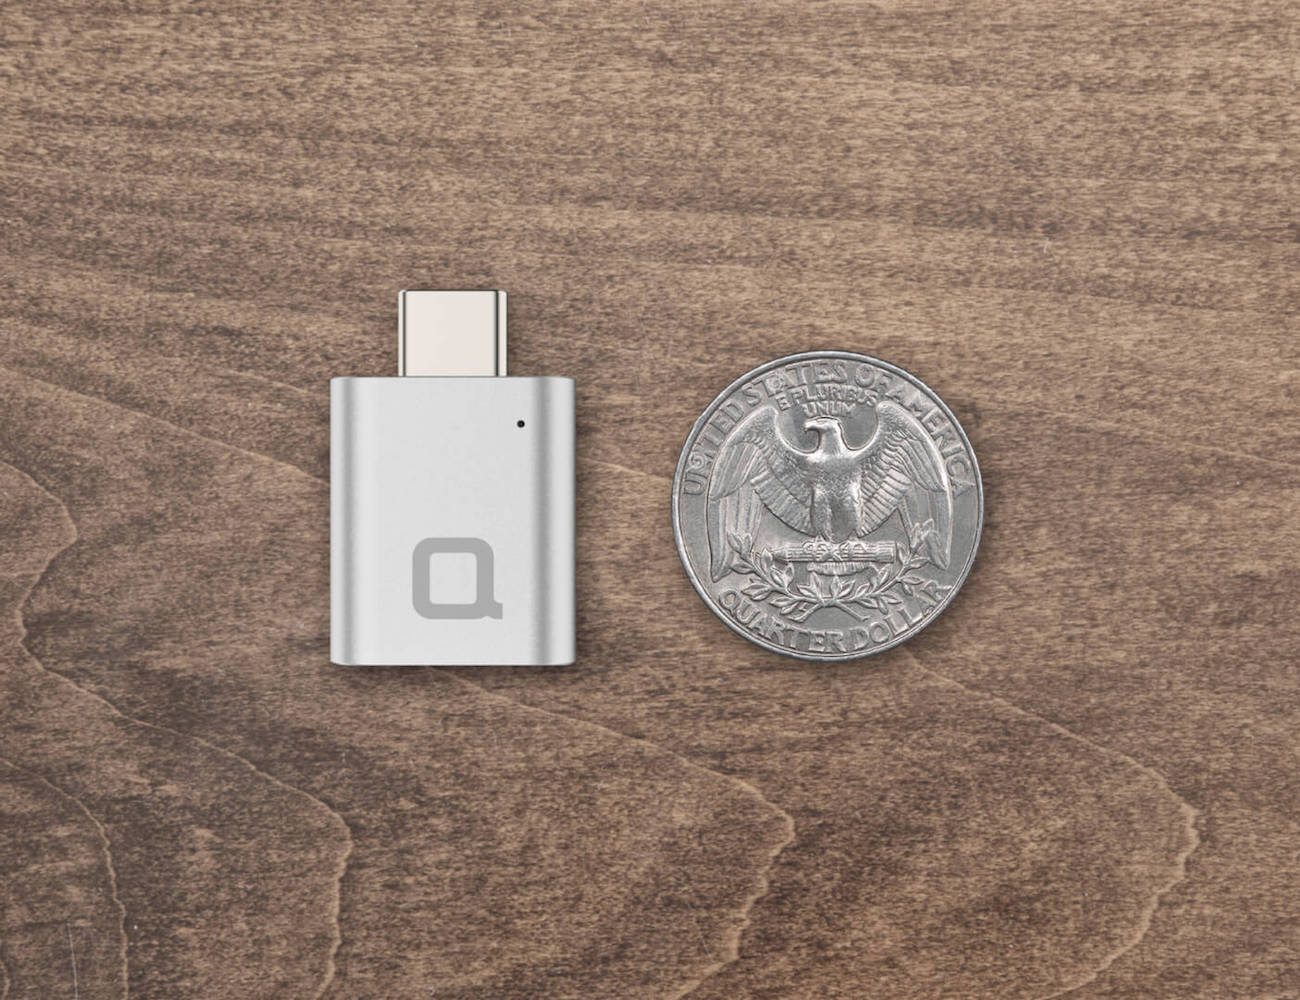 USB-C Mini – The World's Smallest USB-C Adapter by Nonda